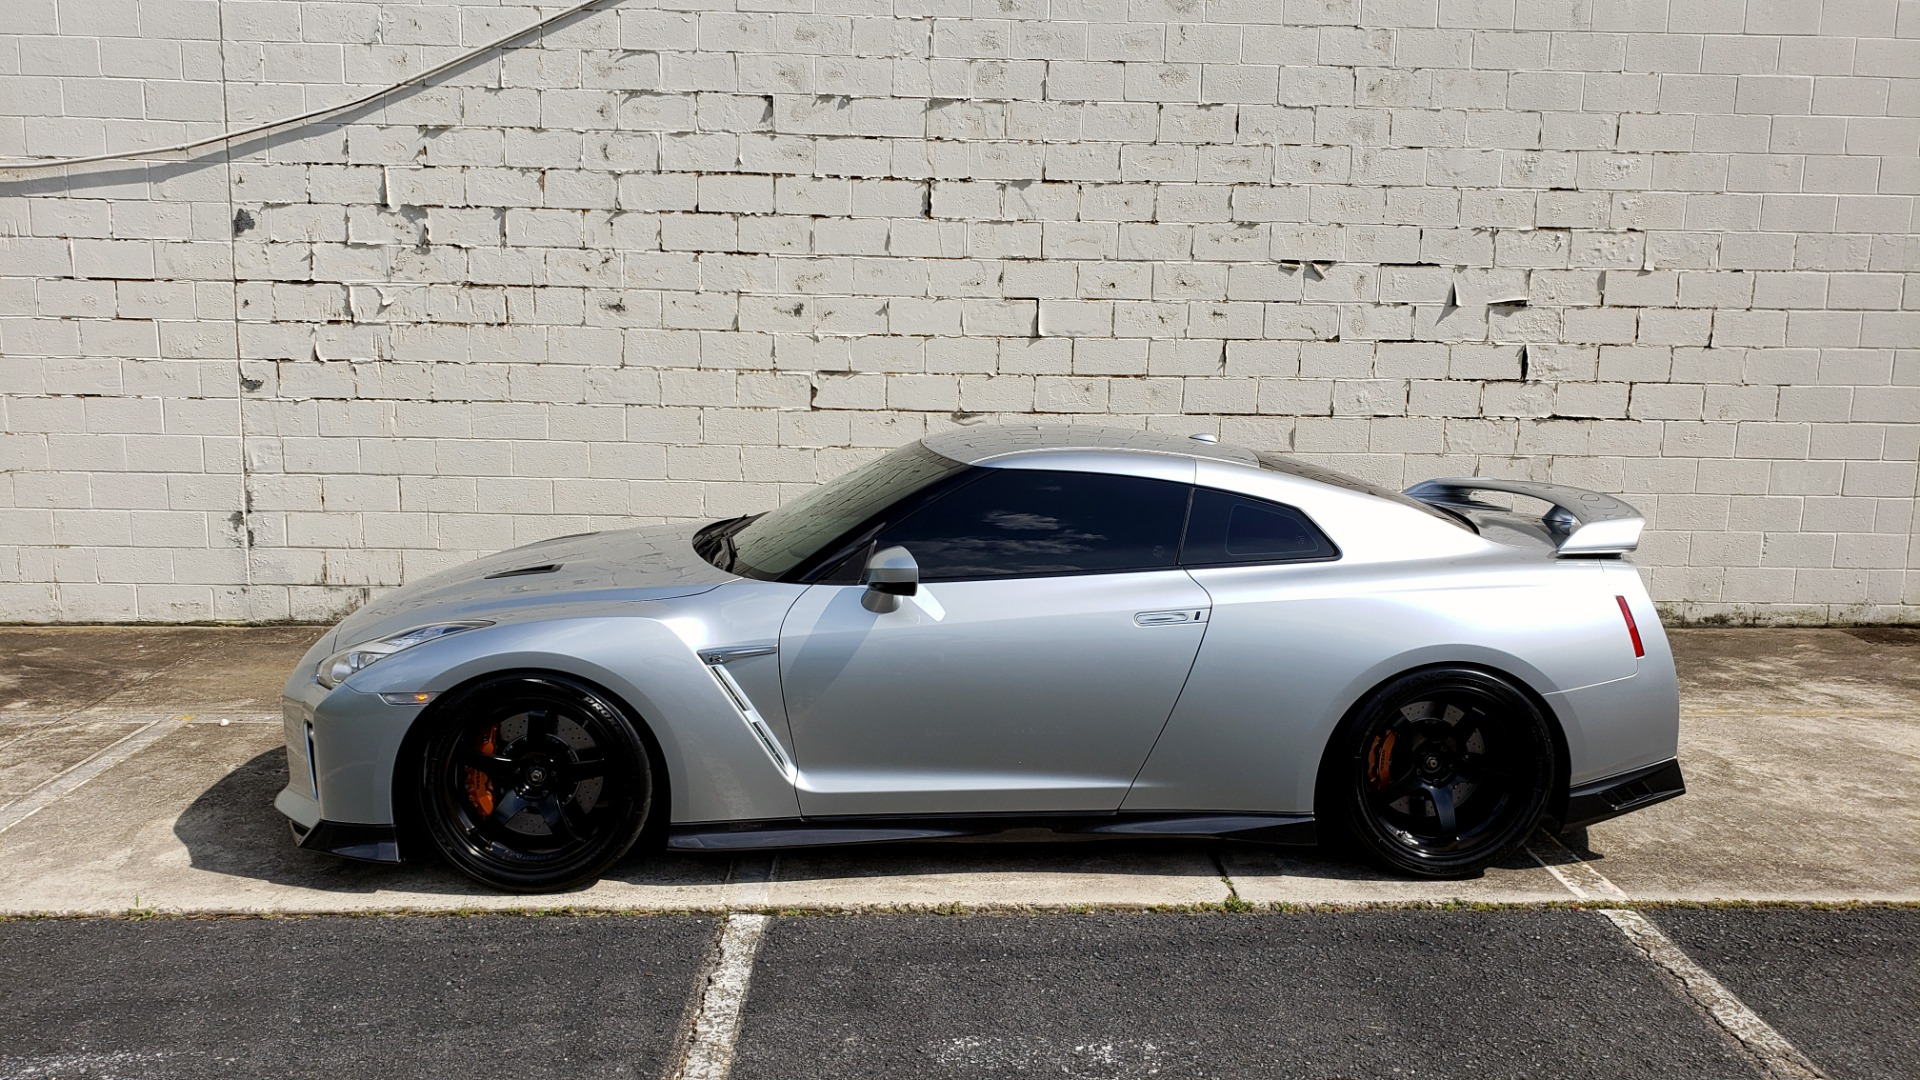 Used 2018 Nissan GT-R PREMIUM / NAV / BOSE / REARVIEW / CUSTOM WHEELS / COIL OVER SHOCKS / TUNED for sale Sold at Formula Imports in Charlotte NC 28227 84